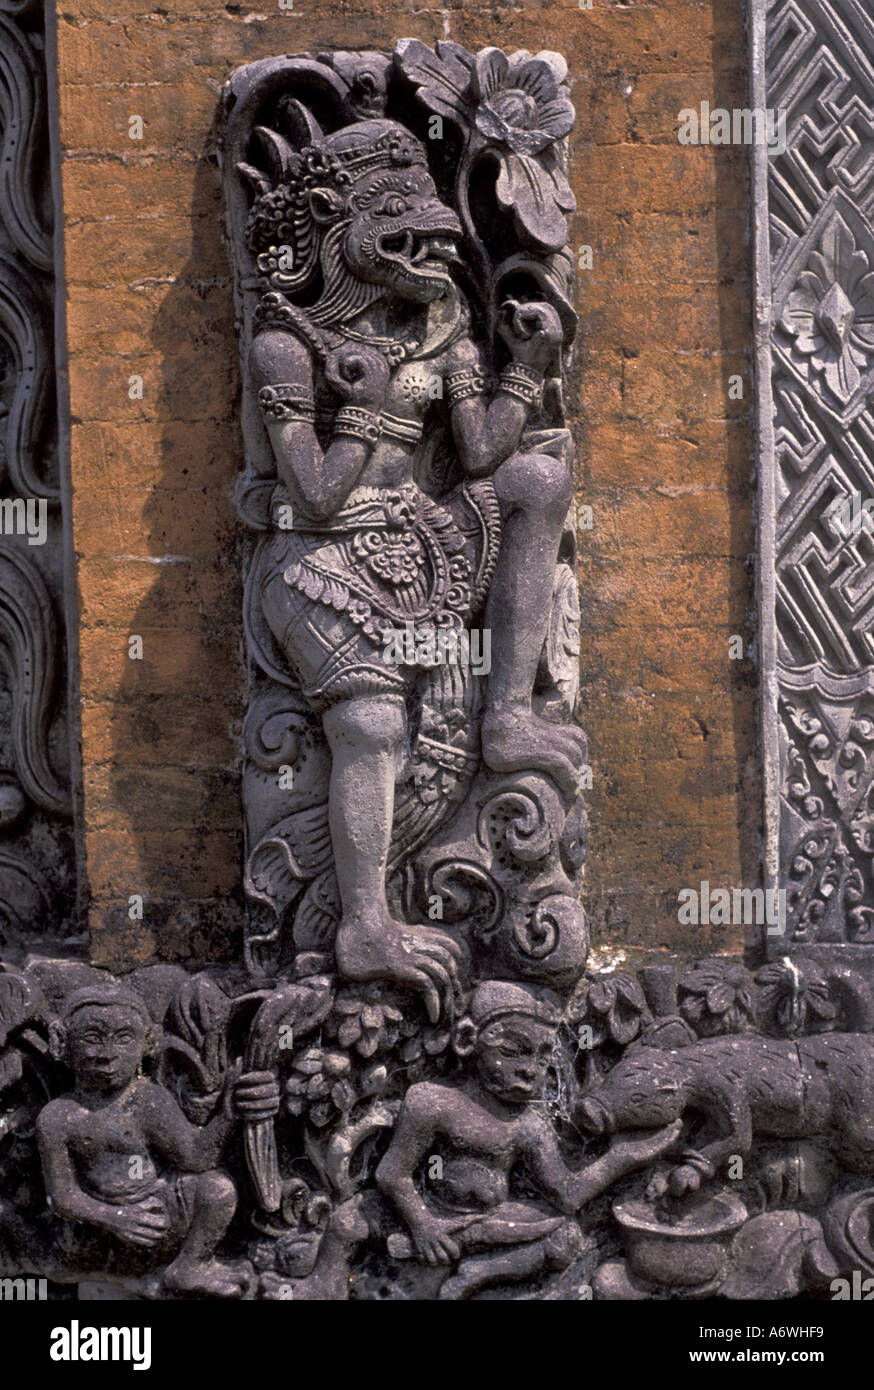 Asia indonesia bali stone wall carvings stock photo